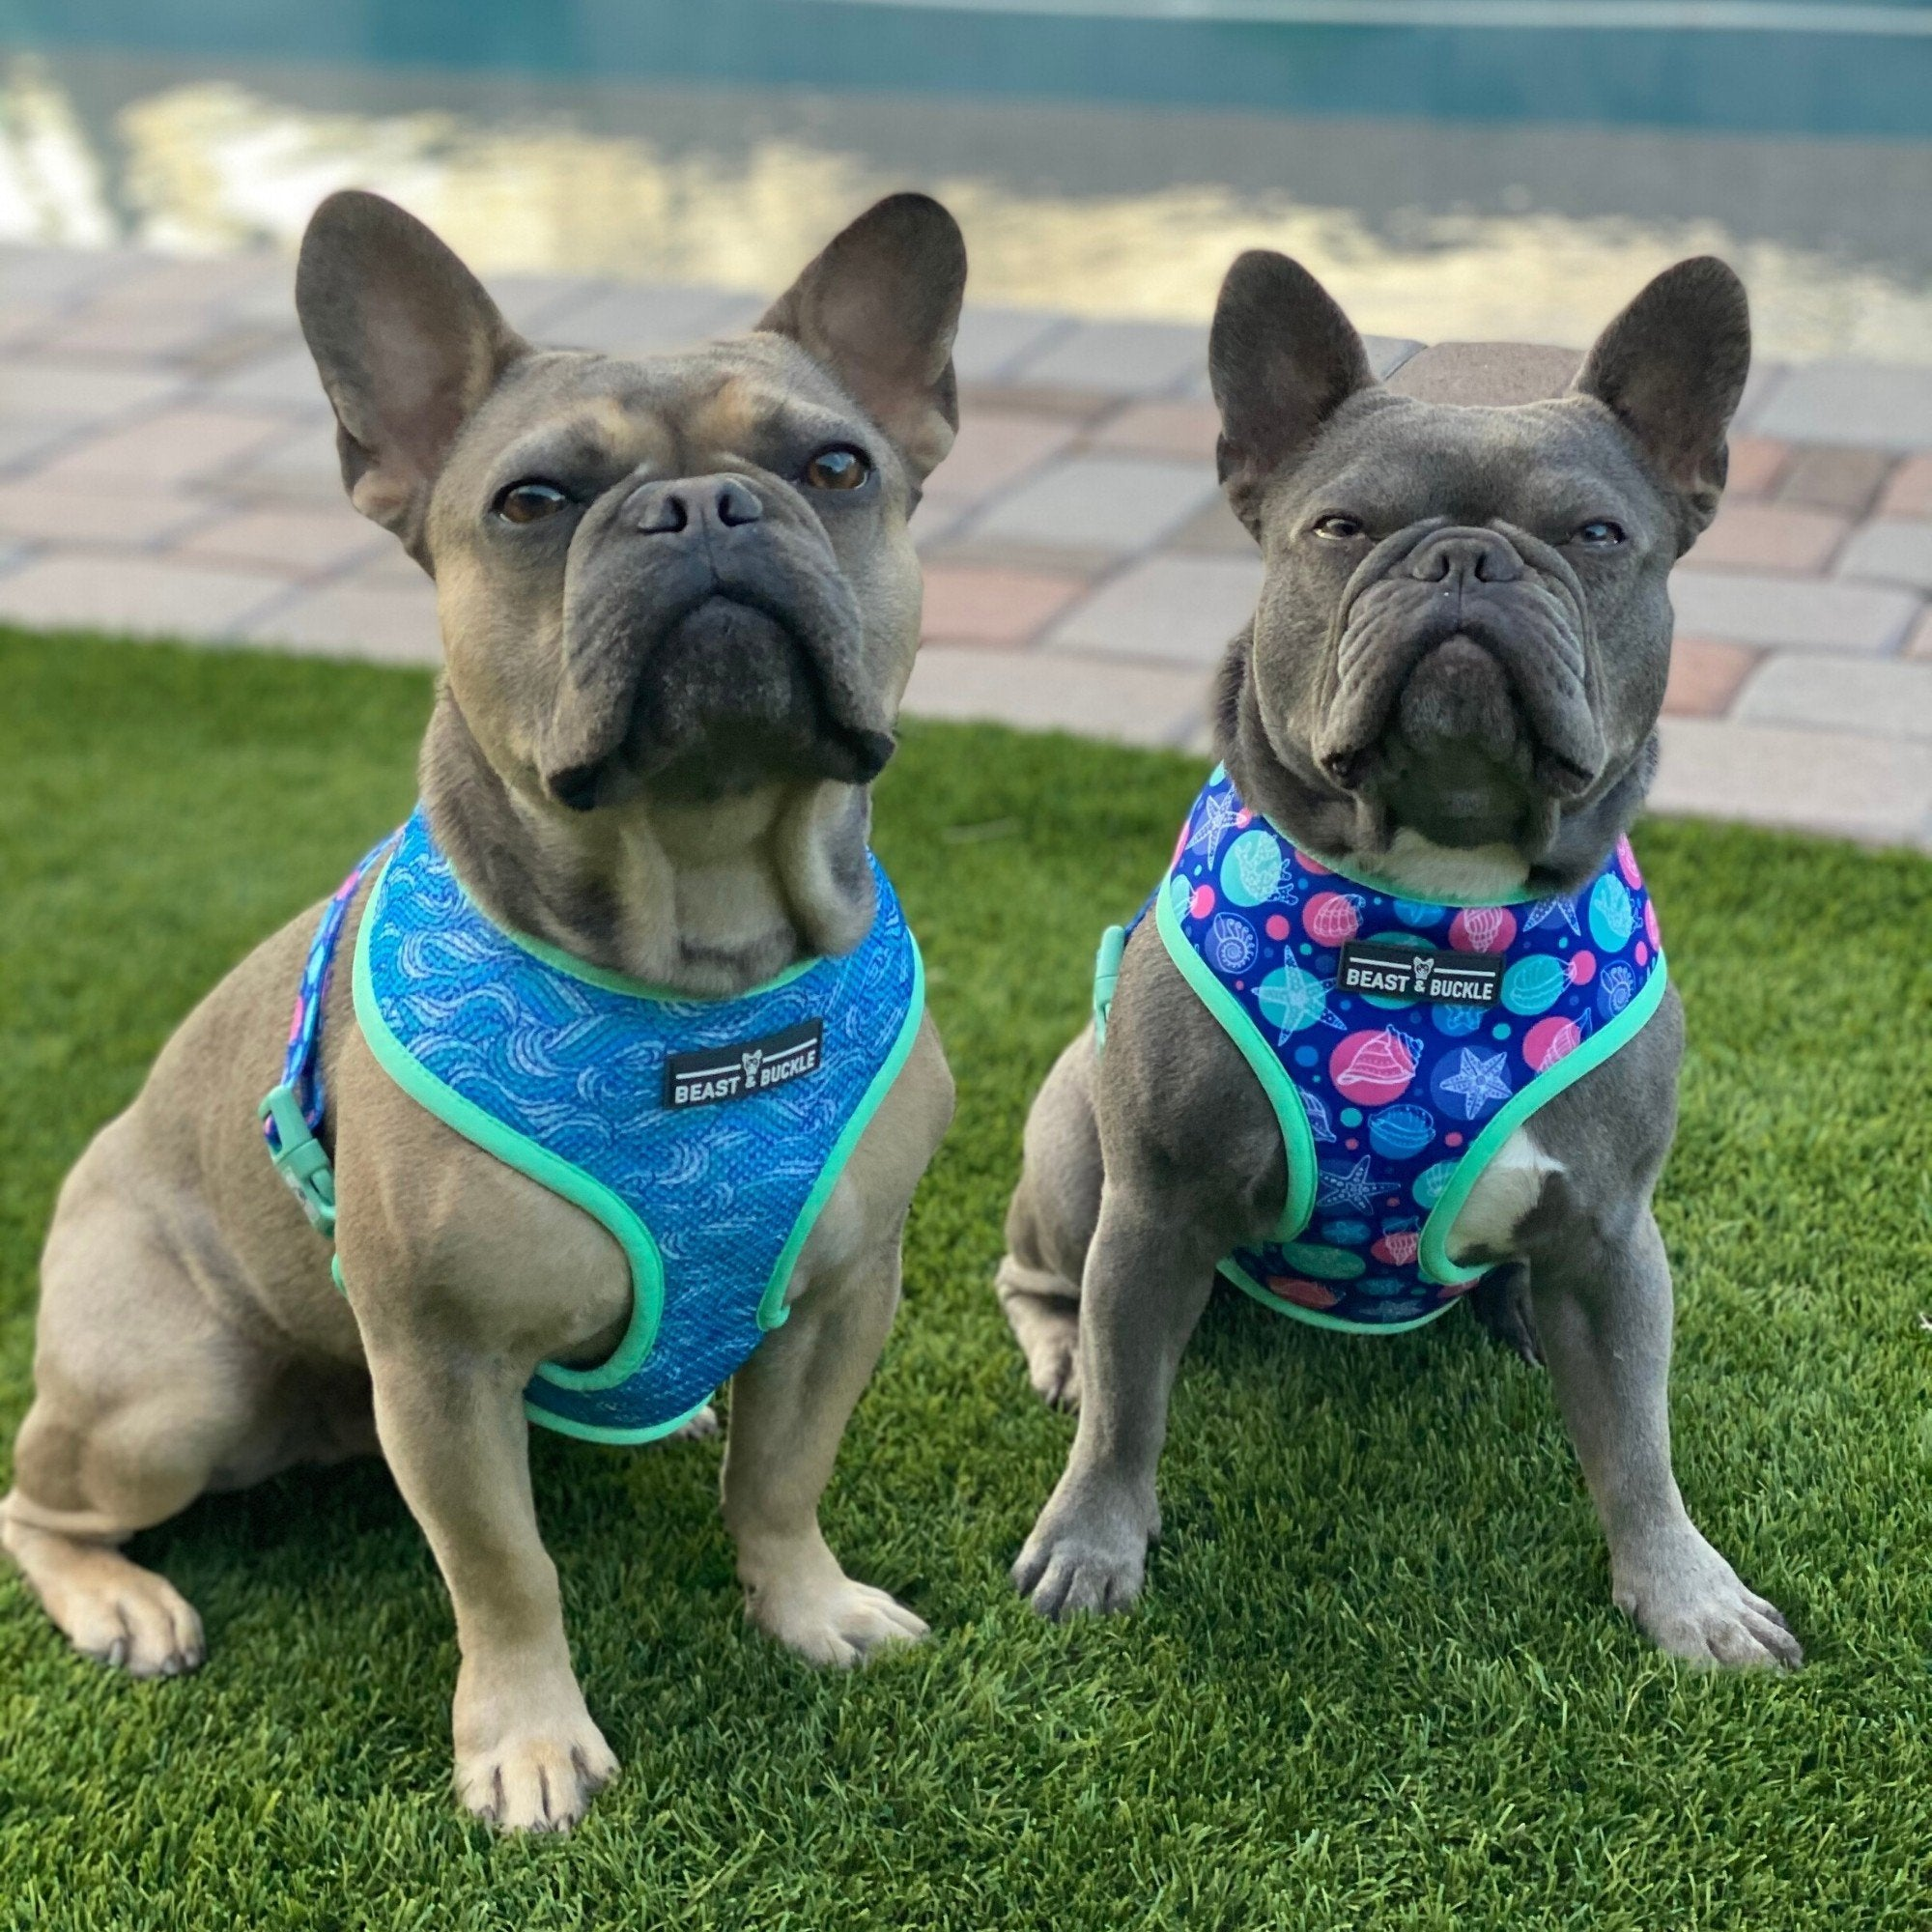 Seashell Harness and Leash Set - Beast & Buckle